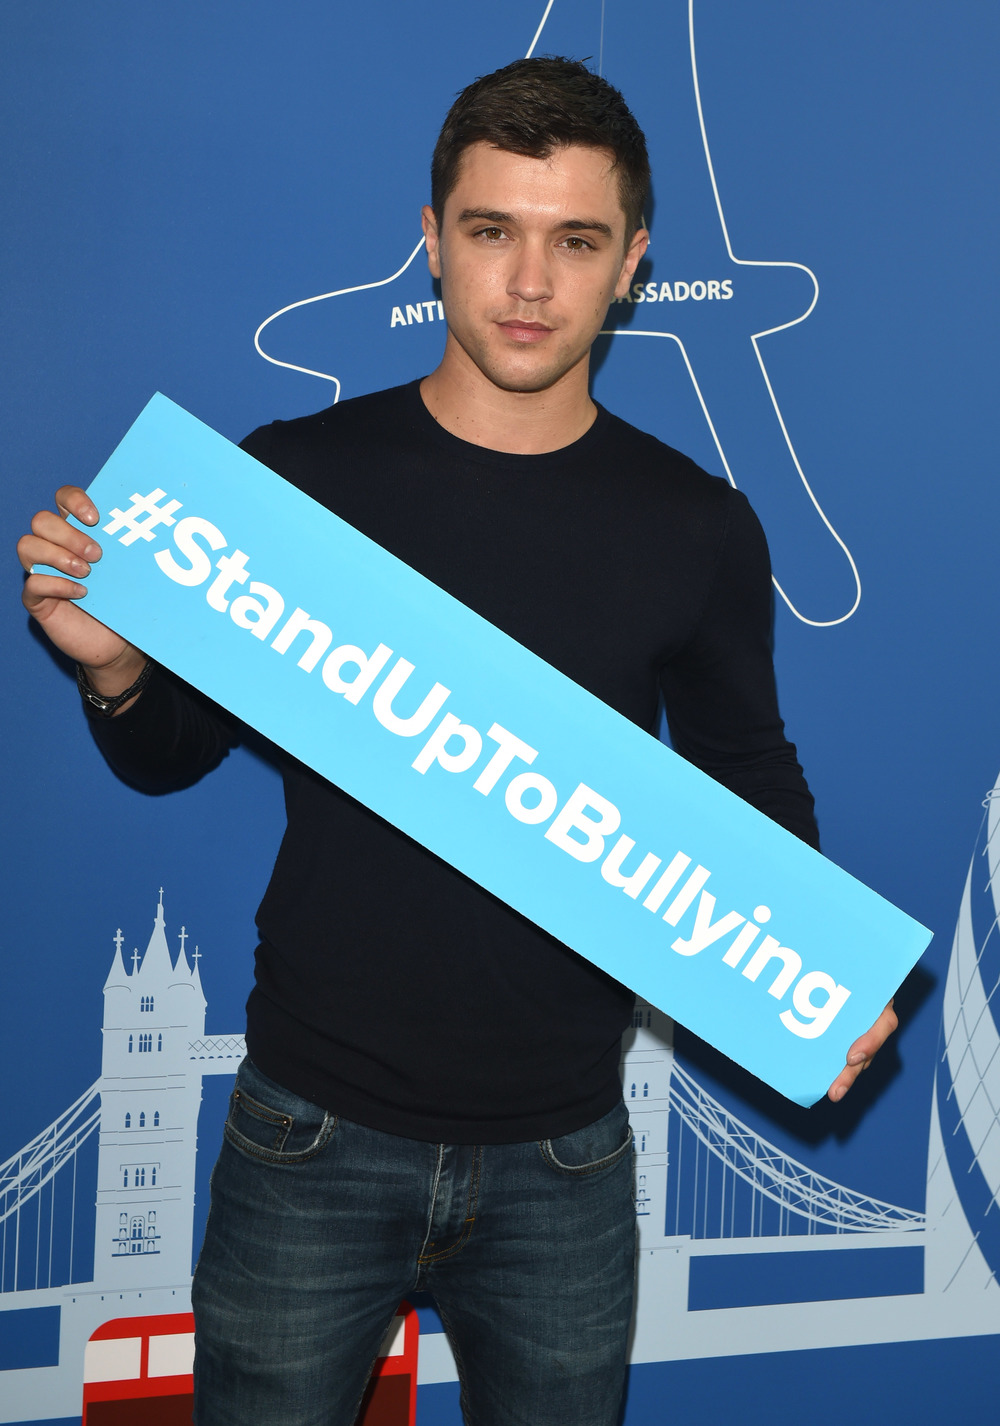 5th July  2016